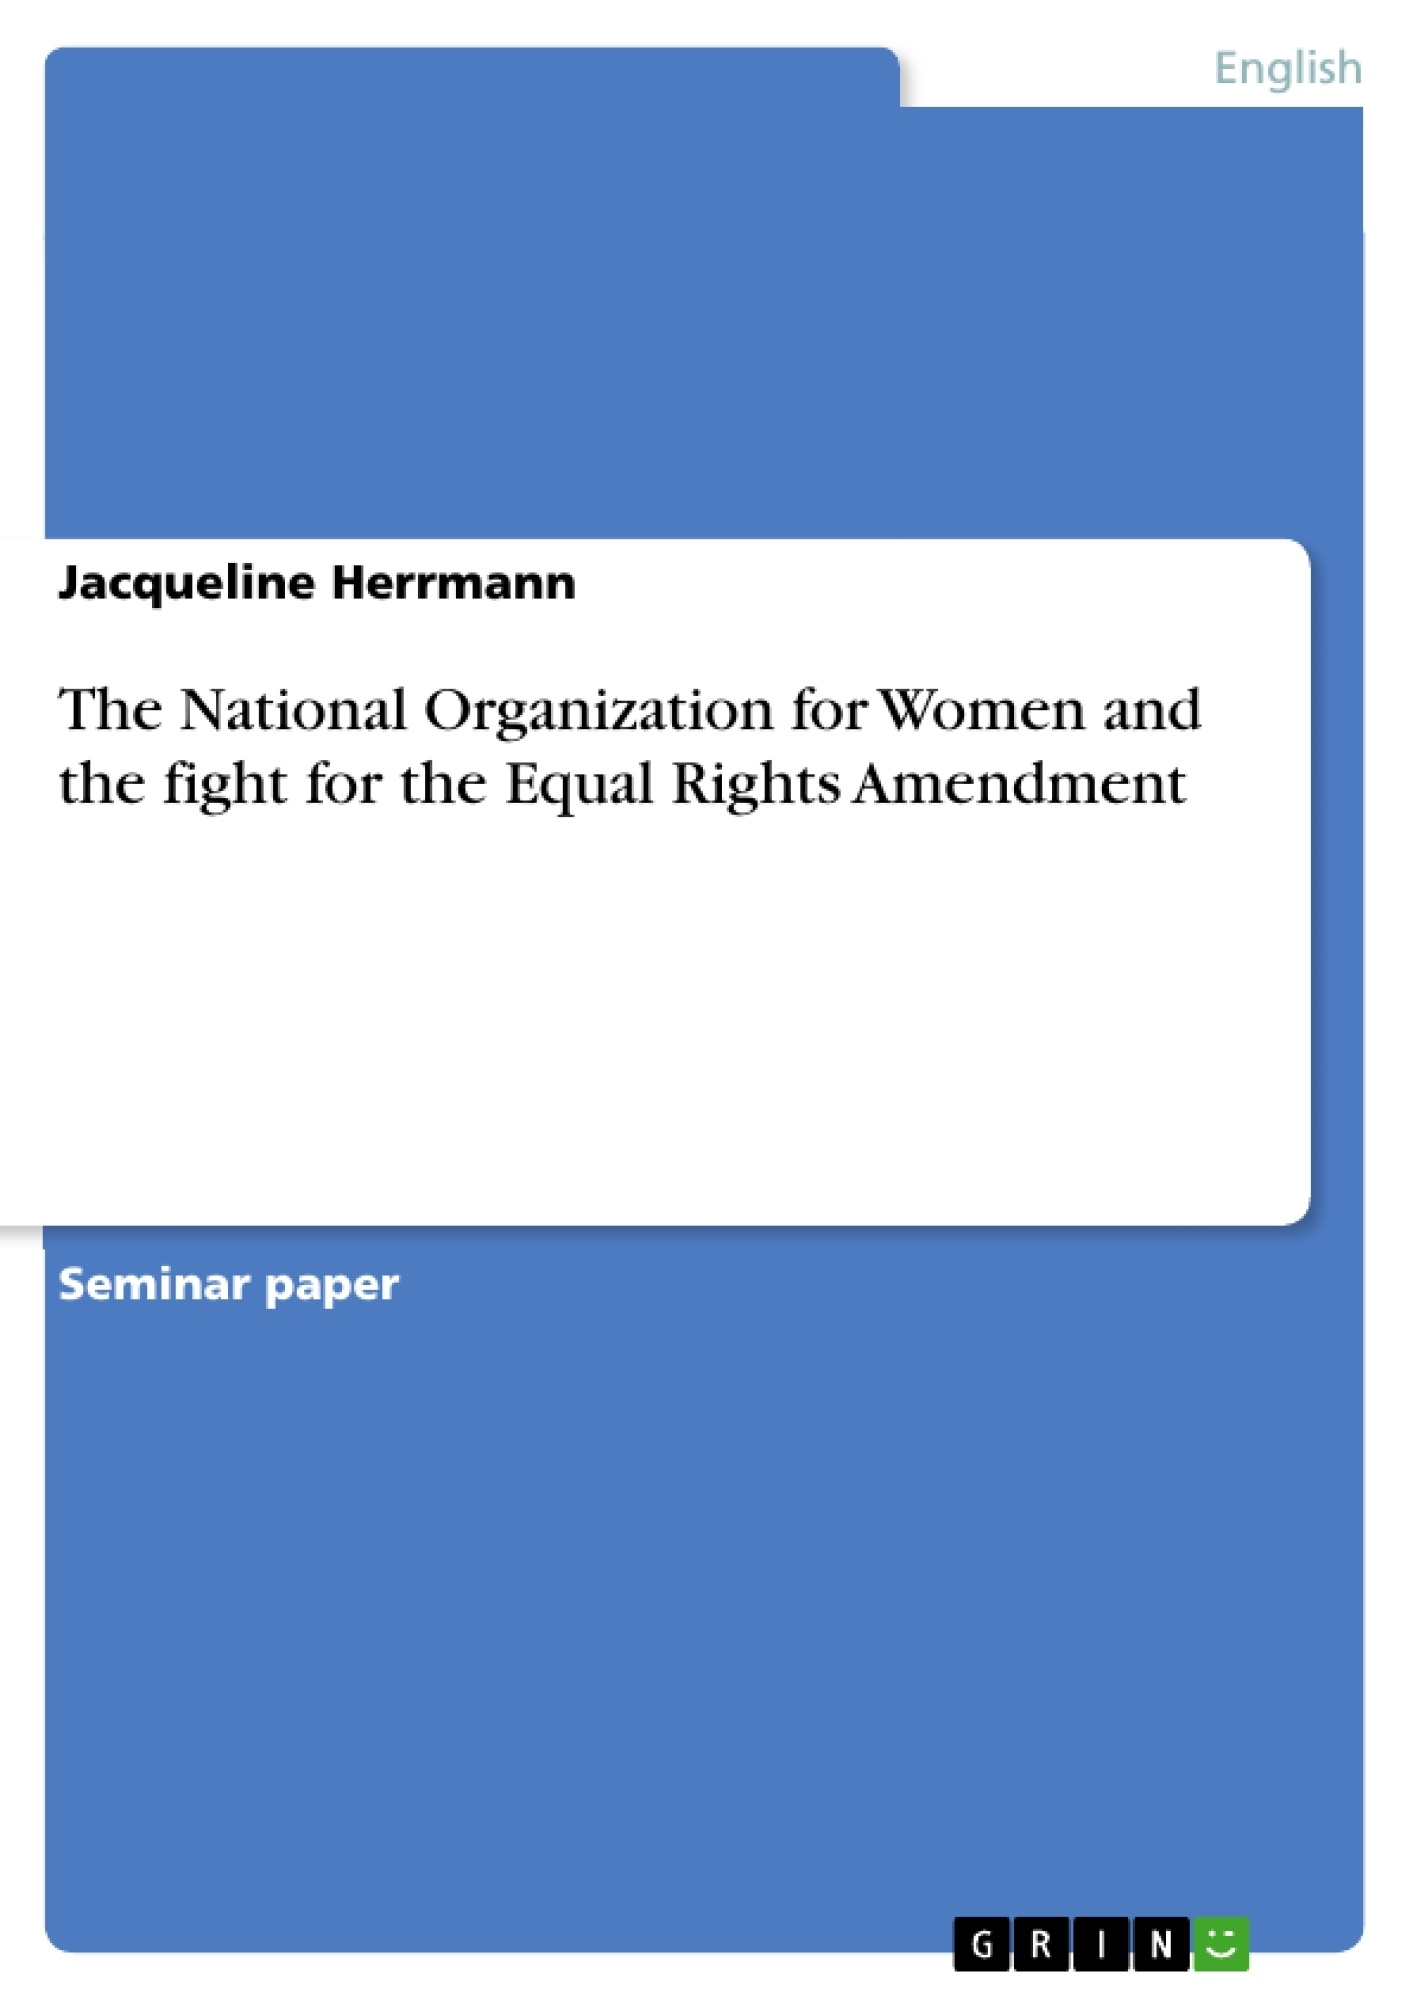 Title: The National Organization for Women and the fight for the Equal Rights Amendment